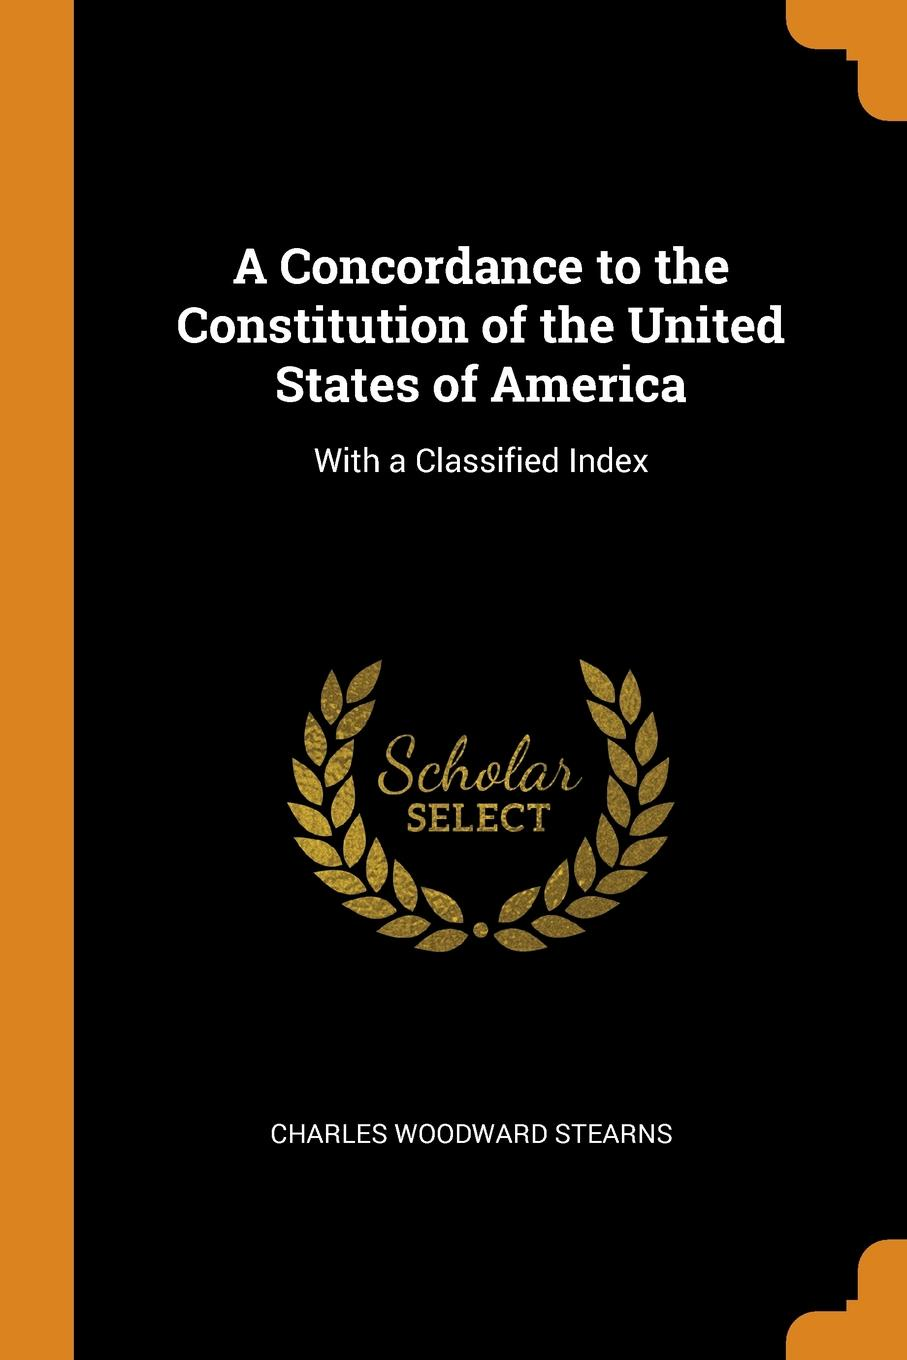 A Concordance to the Constitution of the United States of America. With a Classified Index. Charles Woodward Stearns